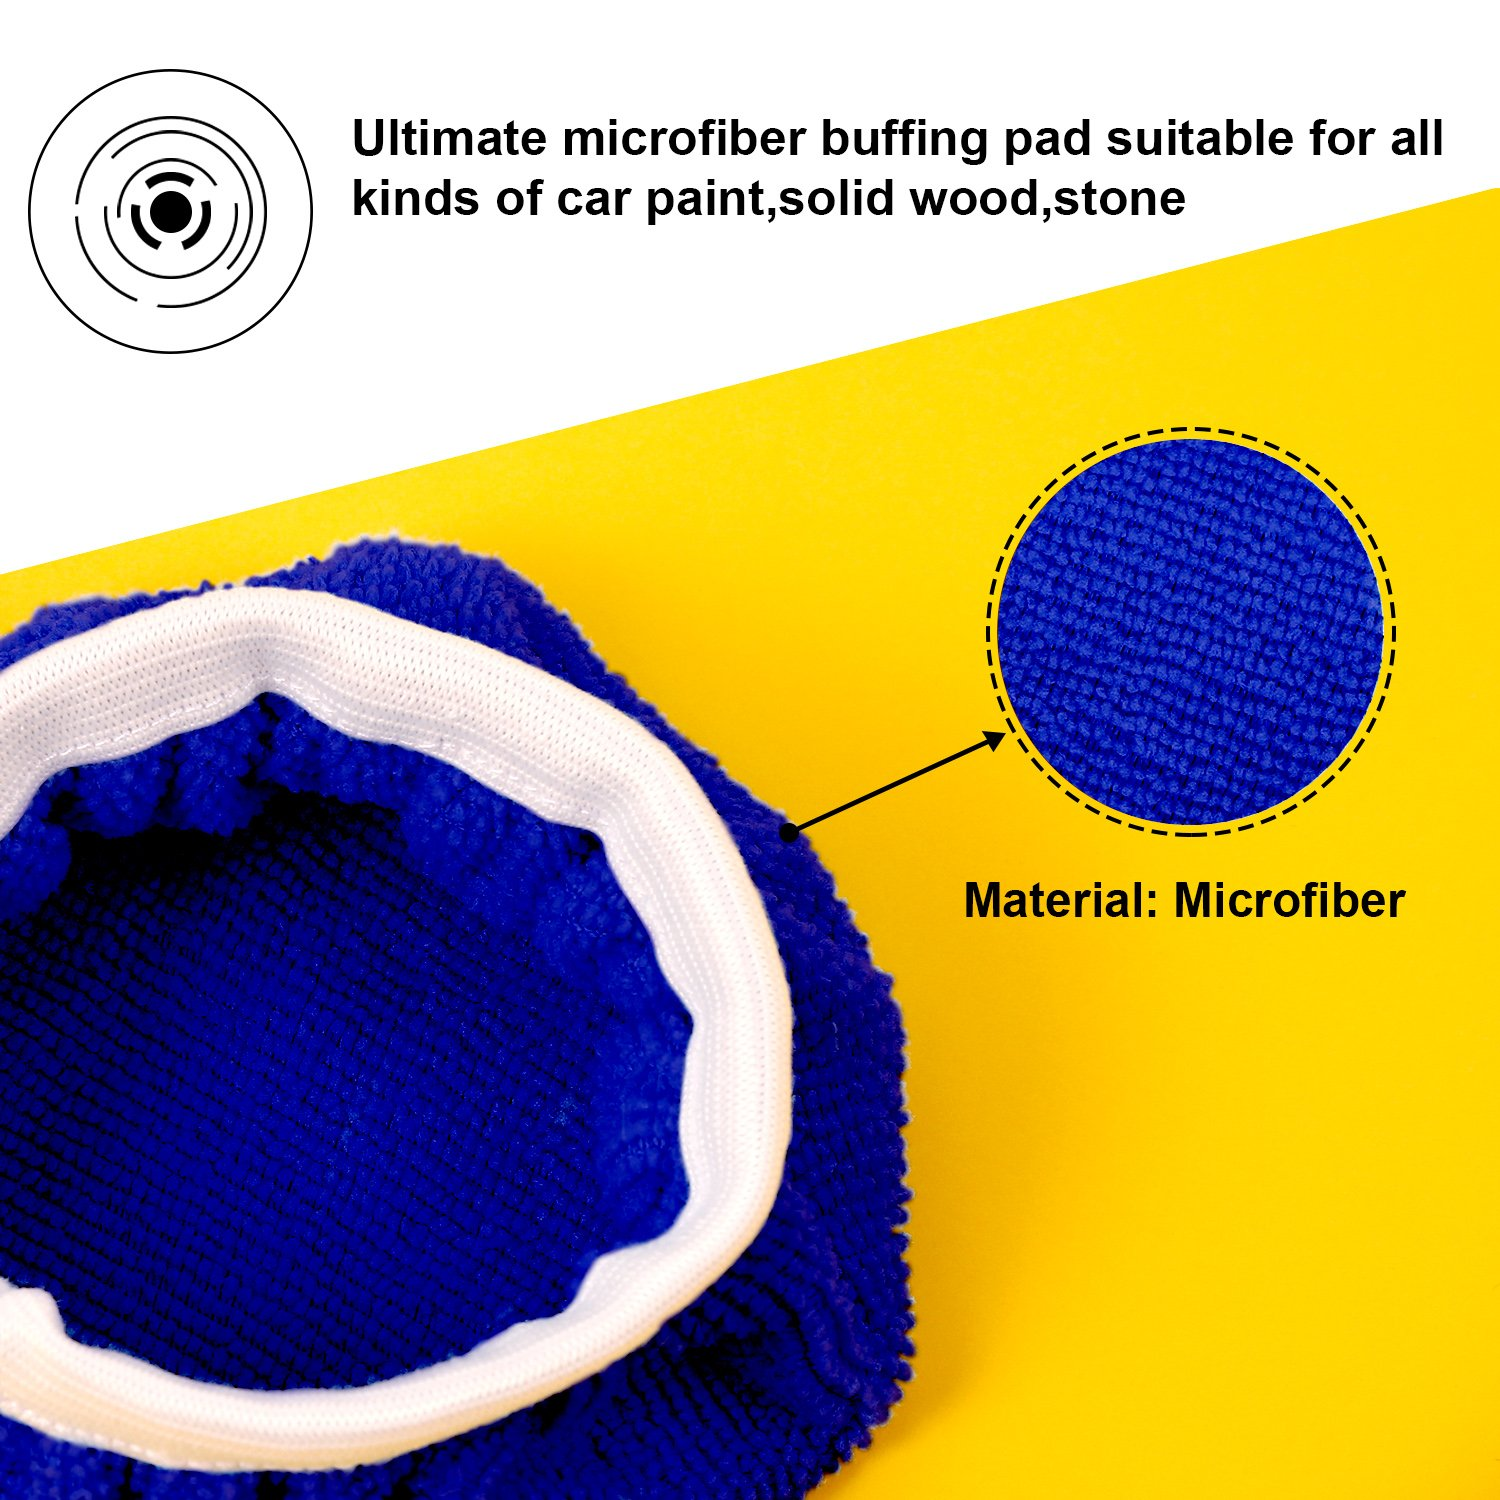 TecUnite 8 Pack Polishing Bonnet Buffing Pad Cover Soft Microfiber Car Polisher Pad Bonnet for Car Polisher (Dark Blue, 7 to 8 Inches) by TecUnite (Image #2)